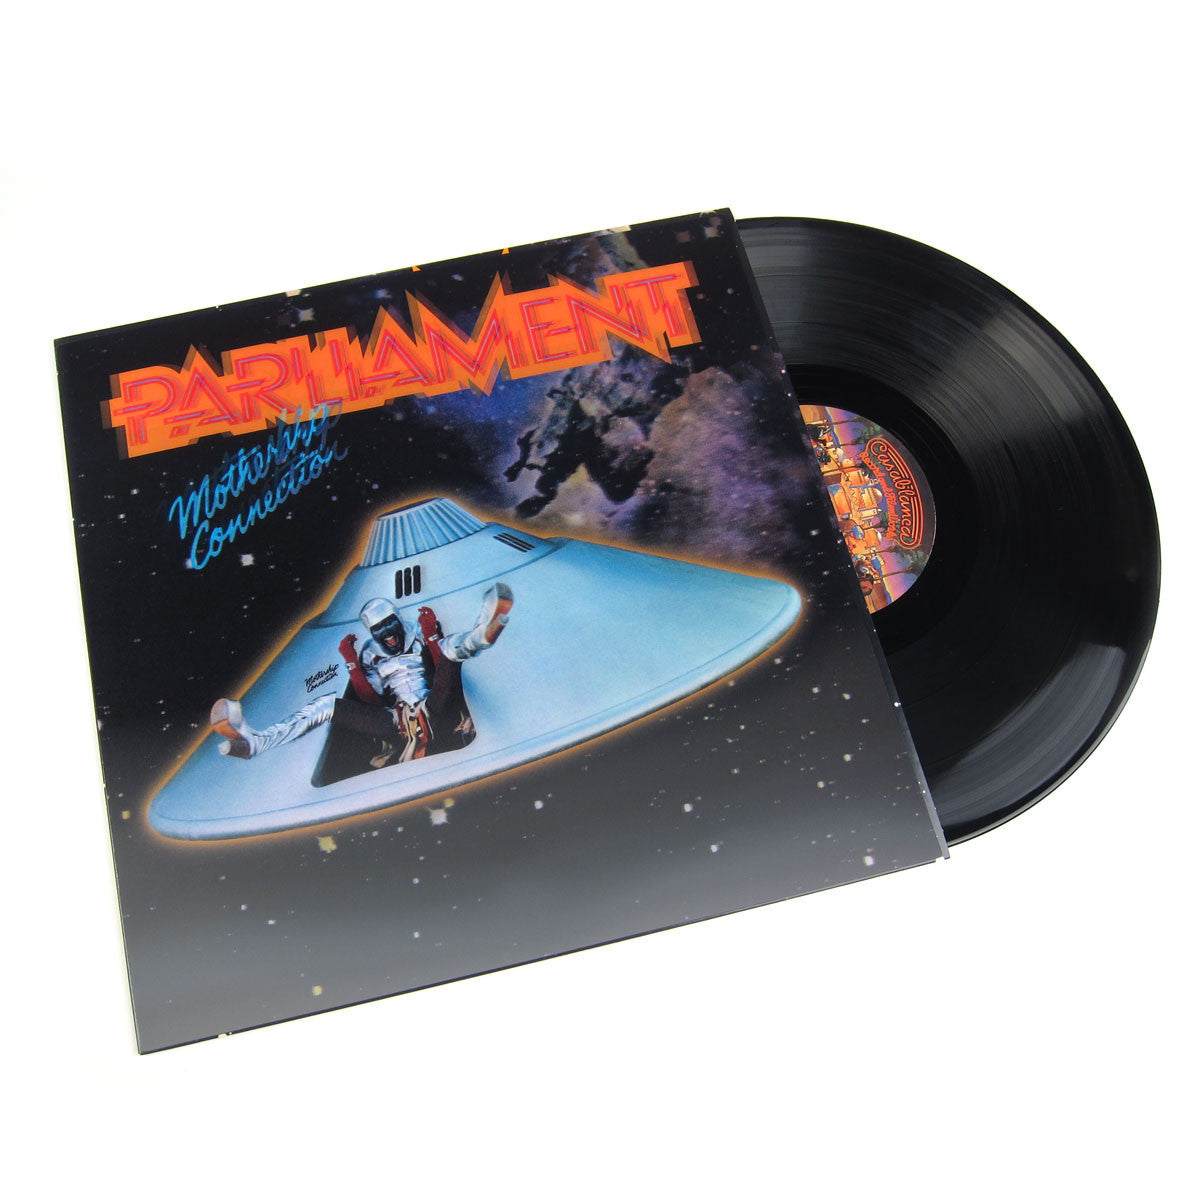 Parliament: Mothership Connection Vinyl LP